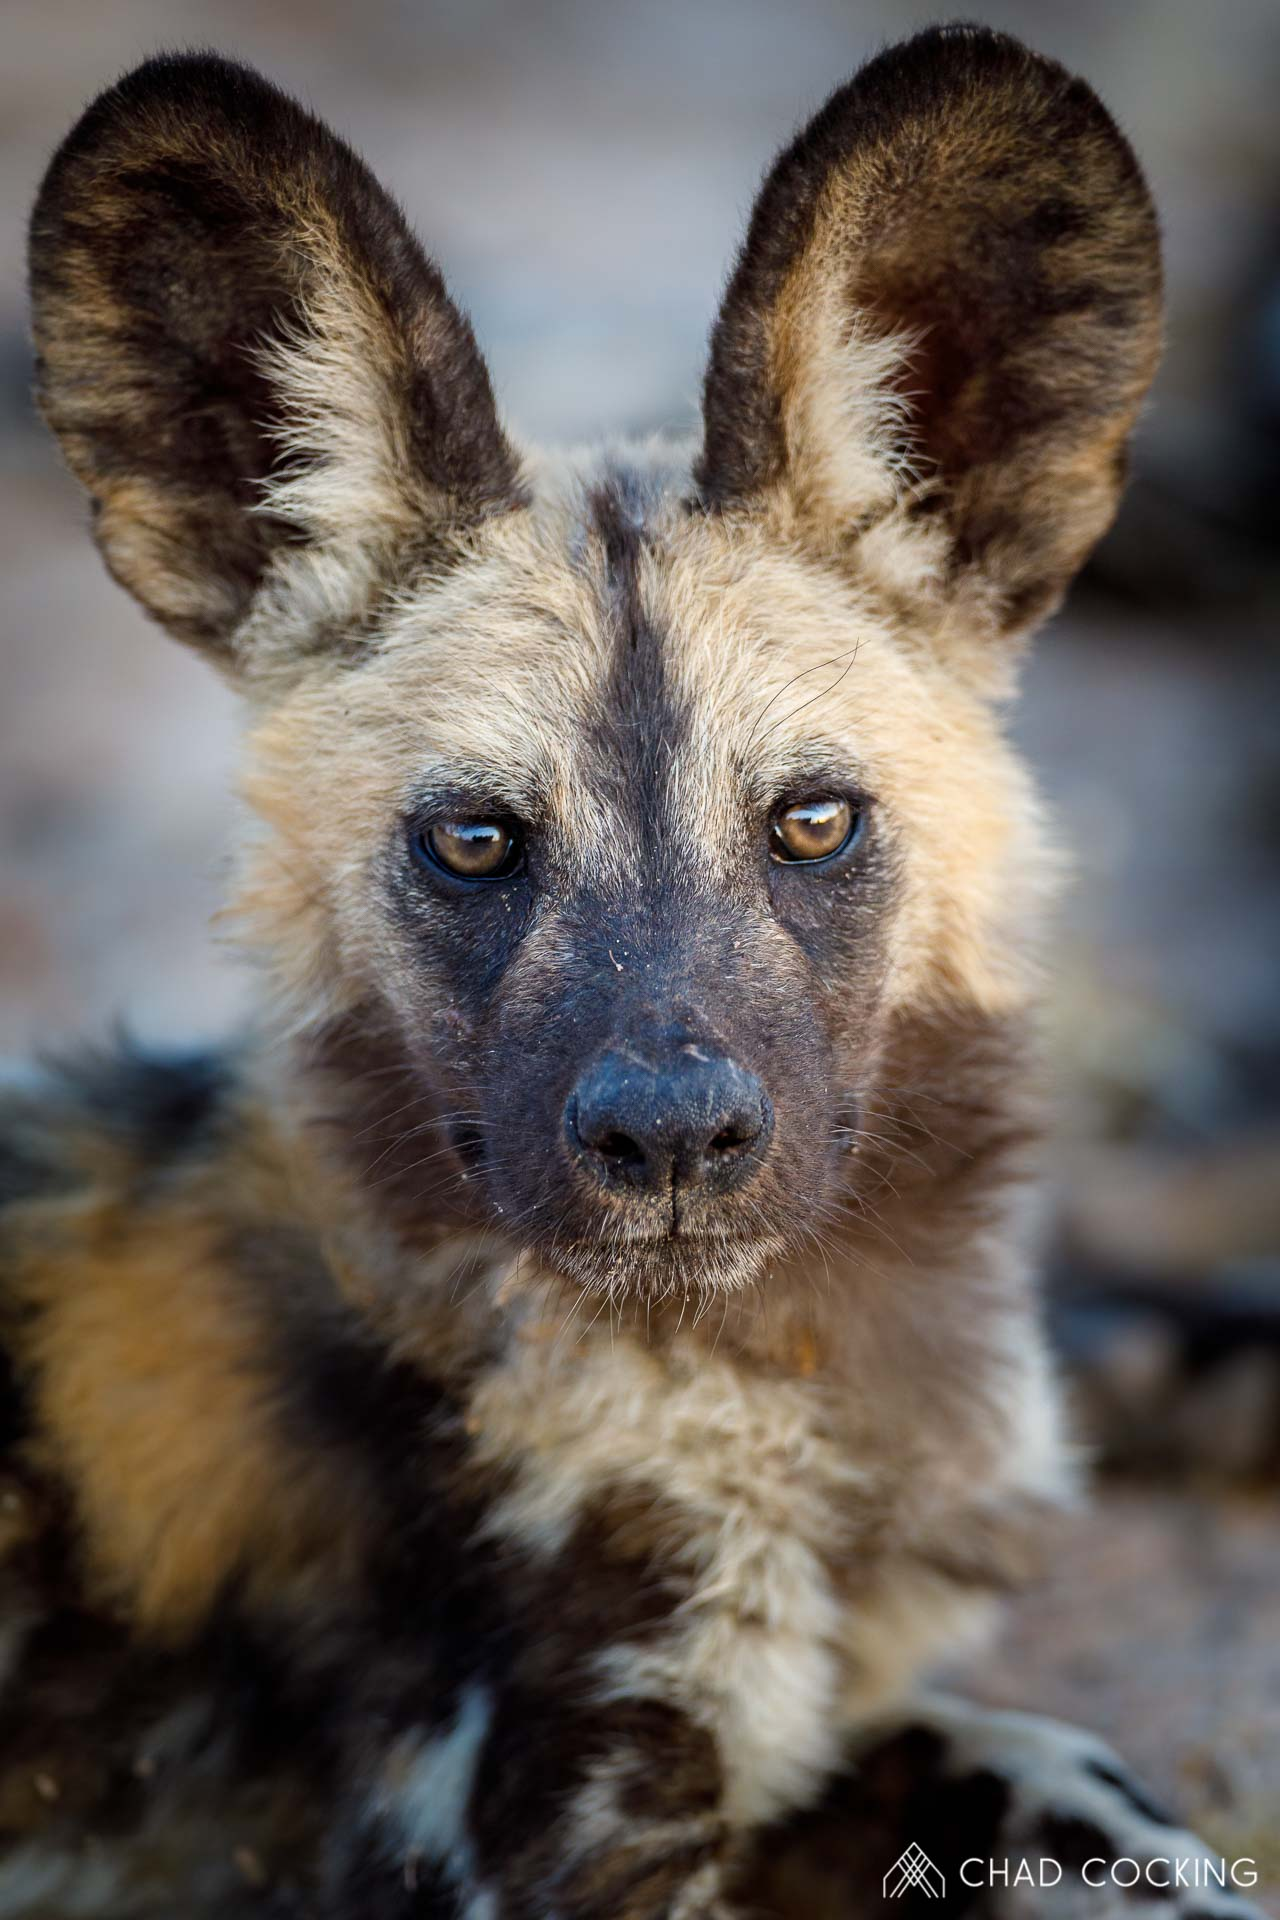 What big ears you have! This painted wolf (African wild dog) has got some of the sharpest hearing in the bush thanks to those enormous (but gorgeous) ears! Via @TandaTula  📸 Chad Cocking https://t.co/LMQegckh7R